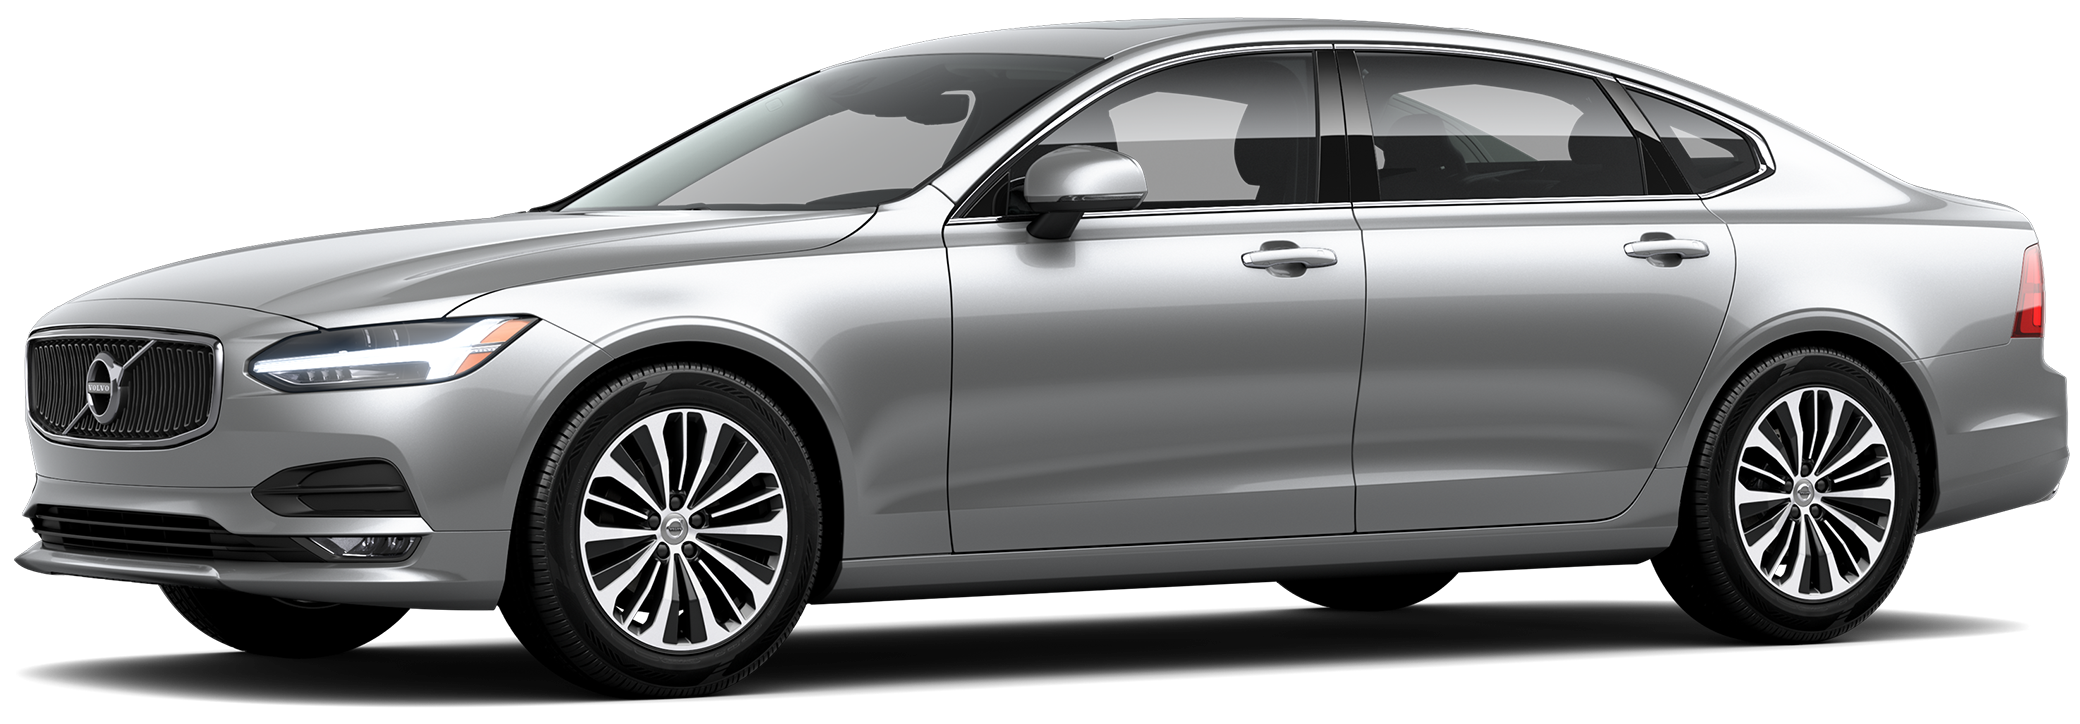 Volvo S90 Inventory For Sale image